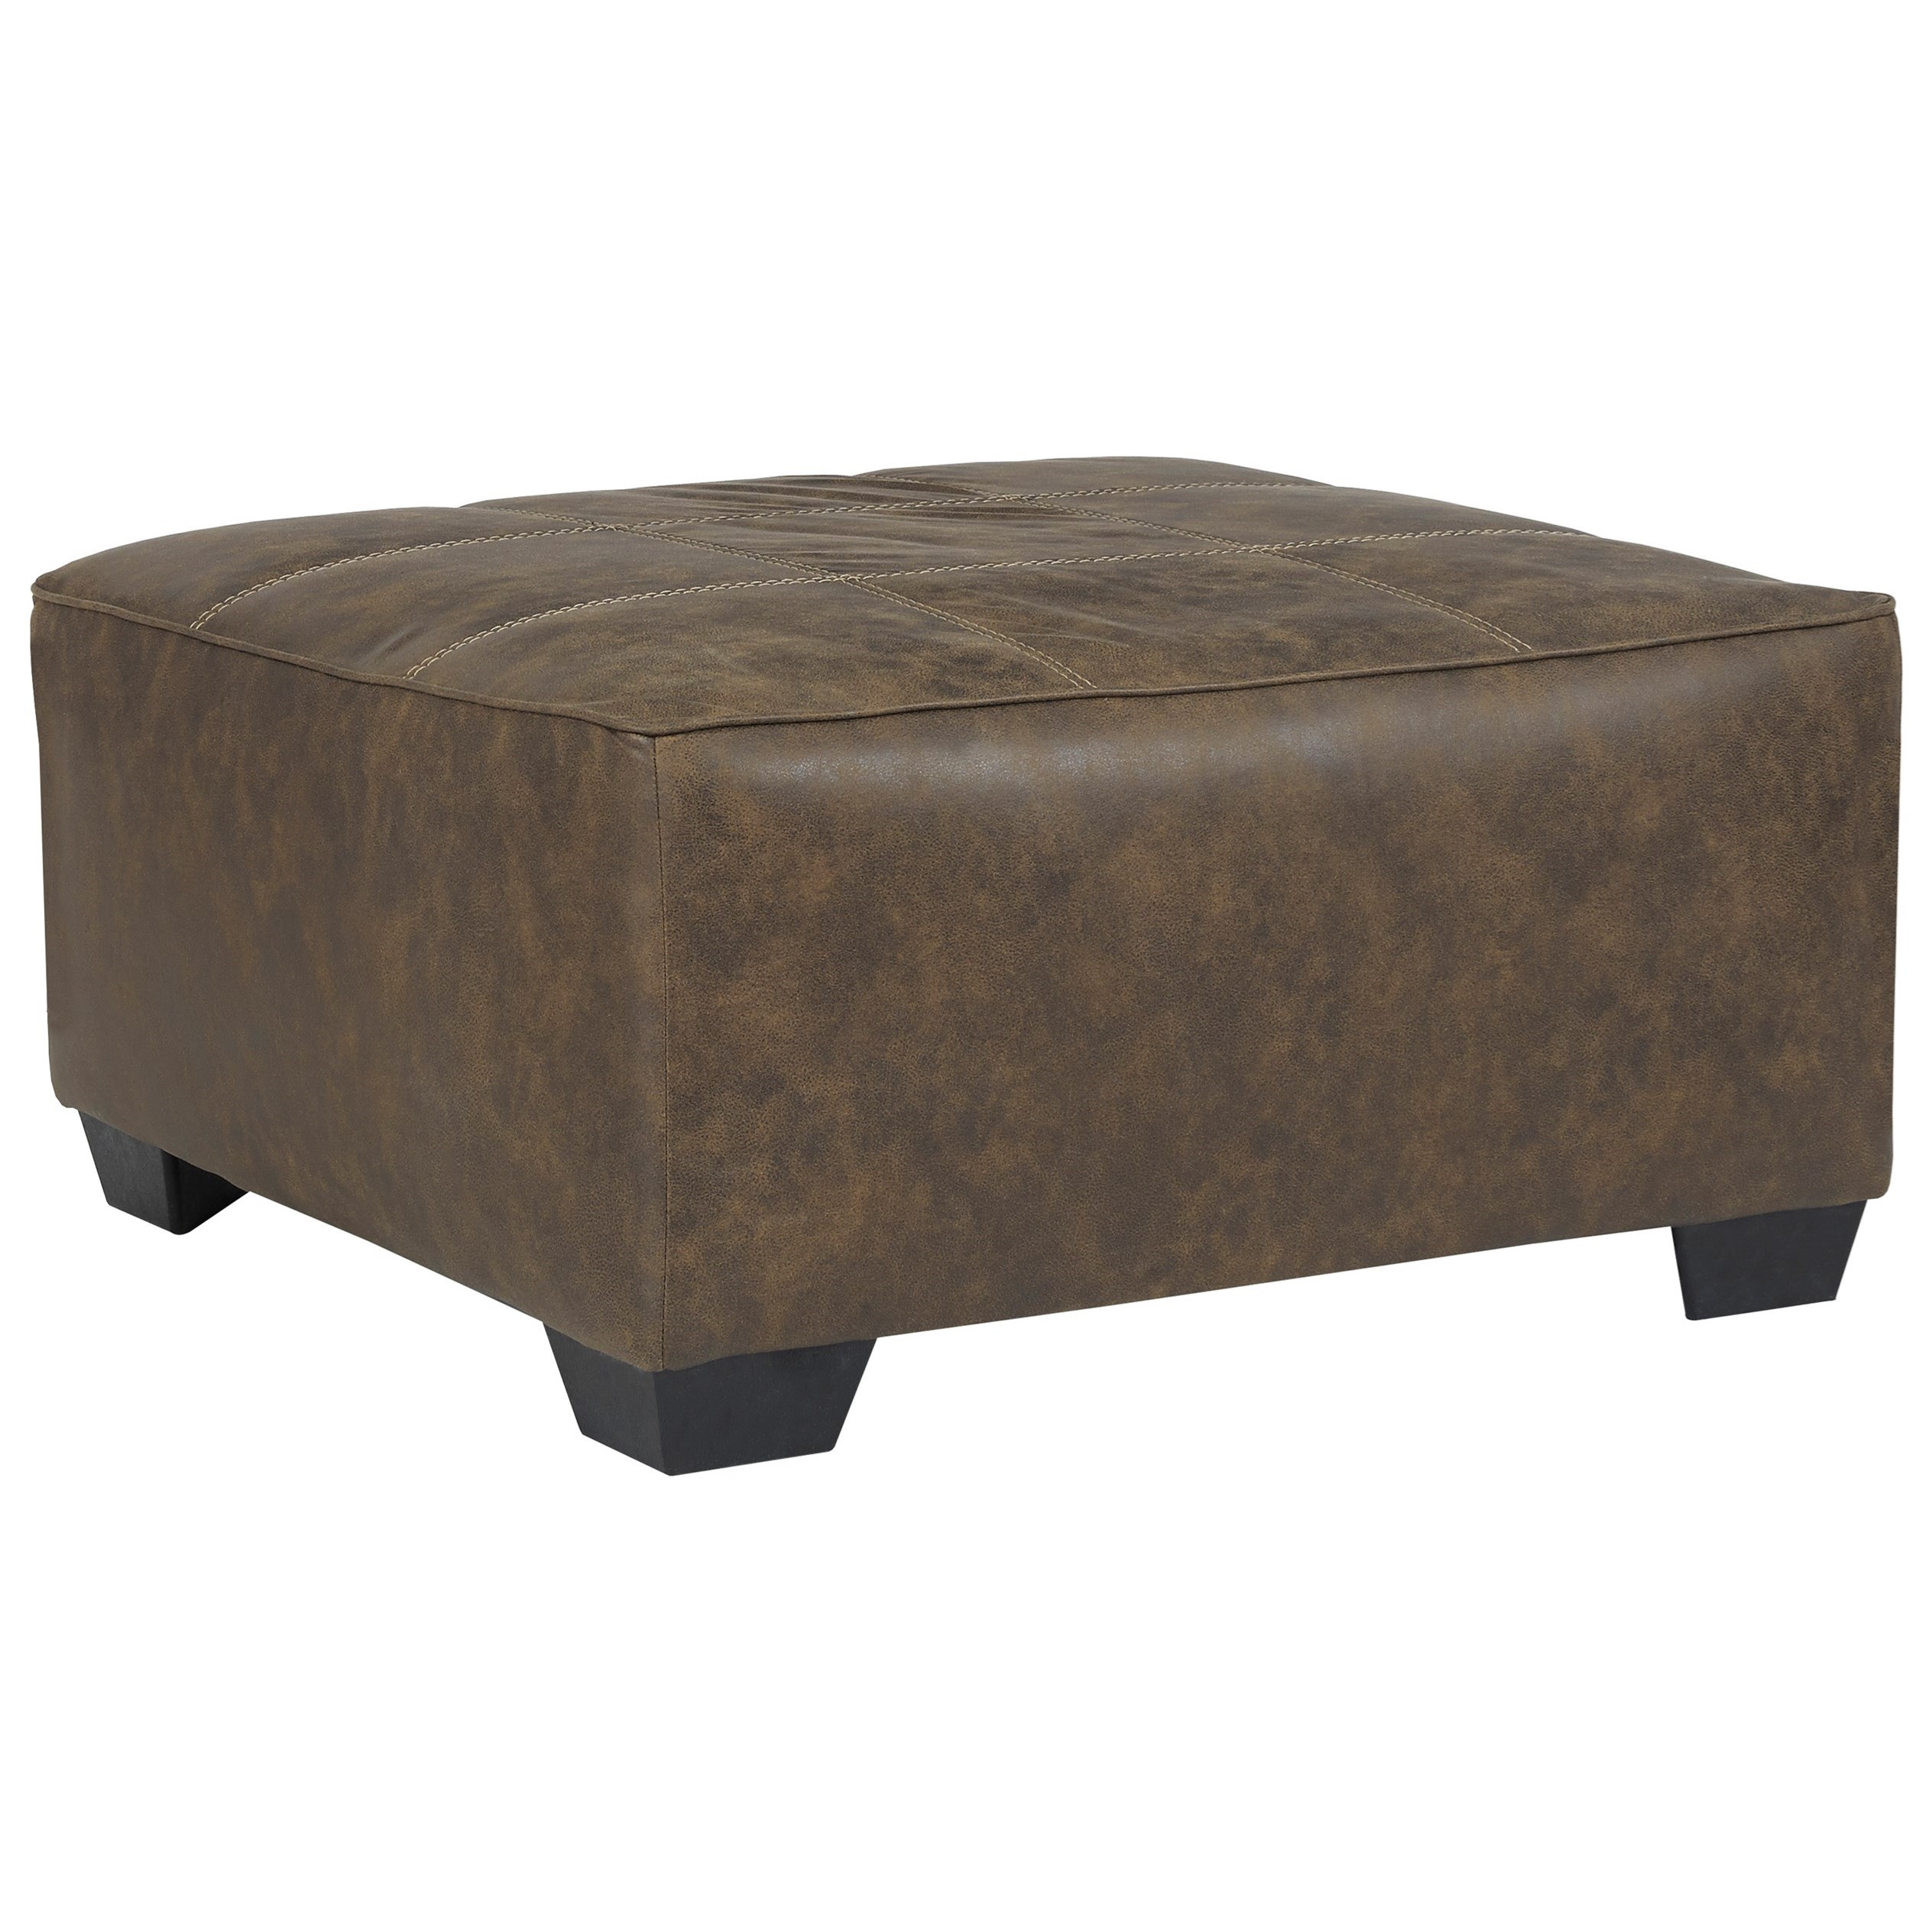 Abalone Oversized Accent Ottoman by Benchcraft at Beds N Stuff